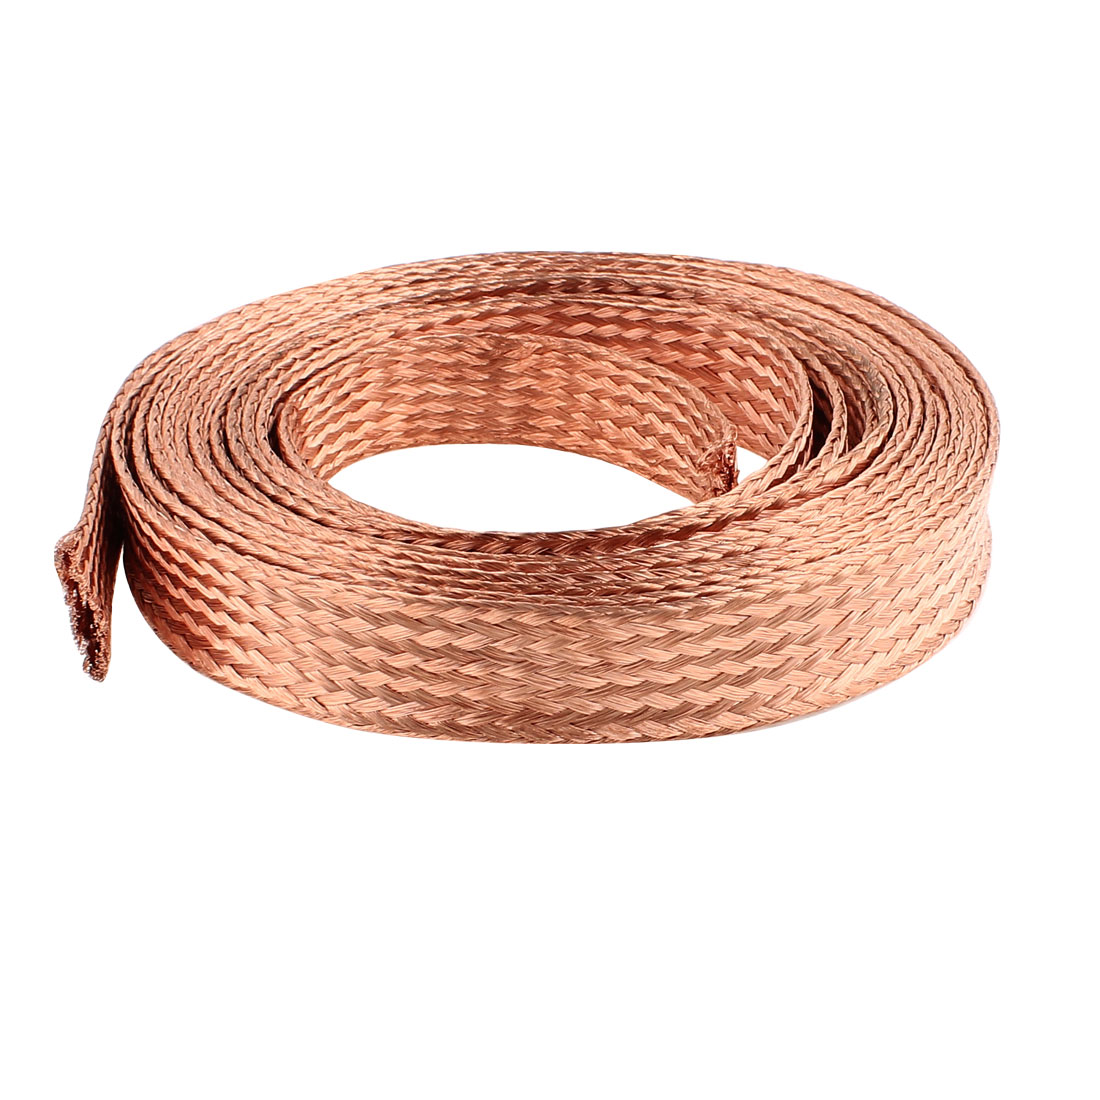 16 Square Millimeter Thickness 5M Length Flat Electrical Bare Braided Copper Wire